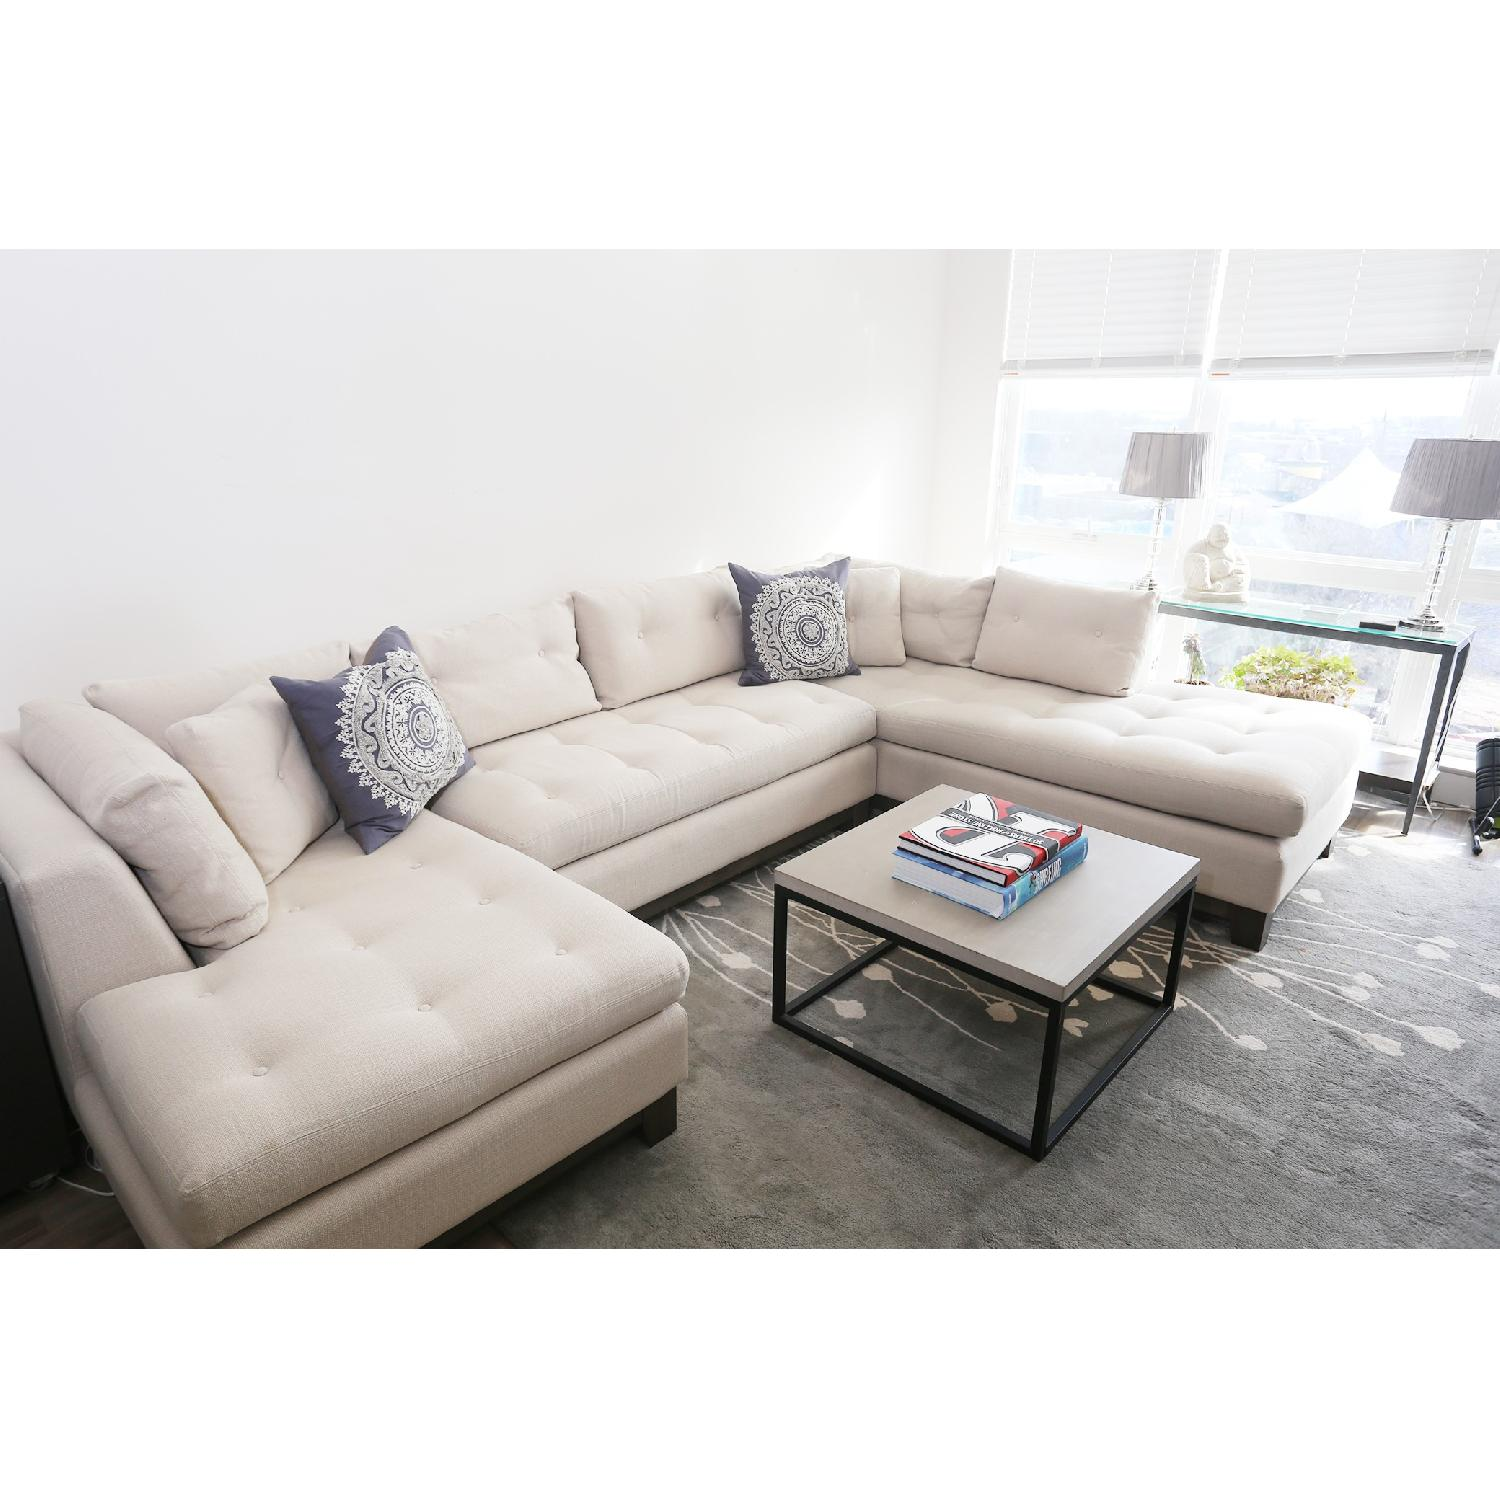 ... Lillian August 3 Piece Tufted Sectional Sofa 0 ...